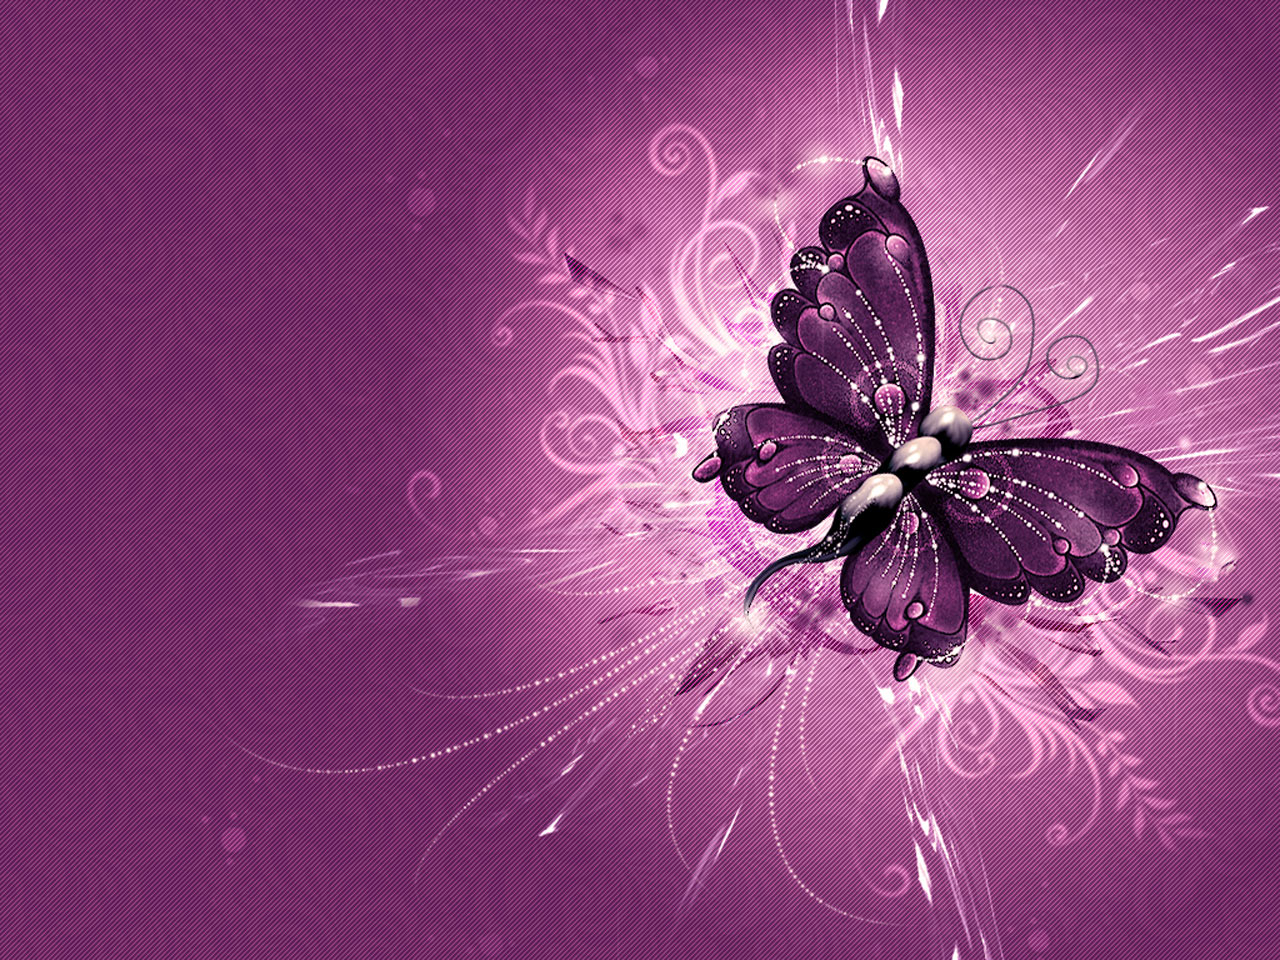 Butterfly Wallpaper 3D Wallpaper Nature Wallpaper Download 1280x960